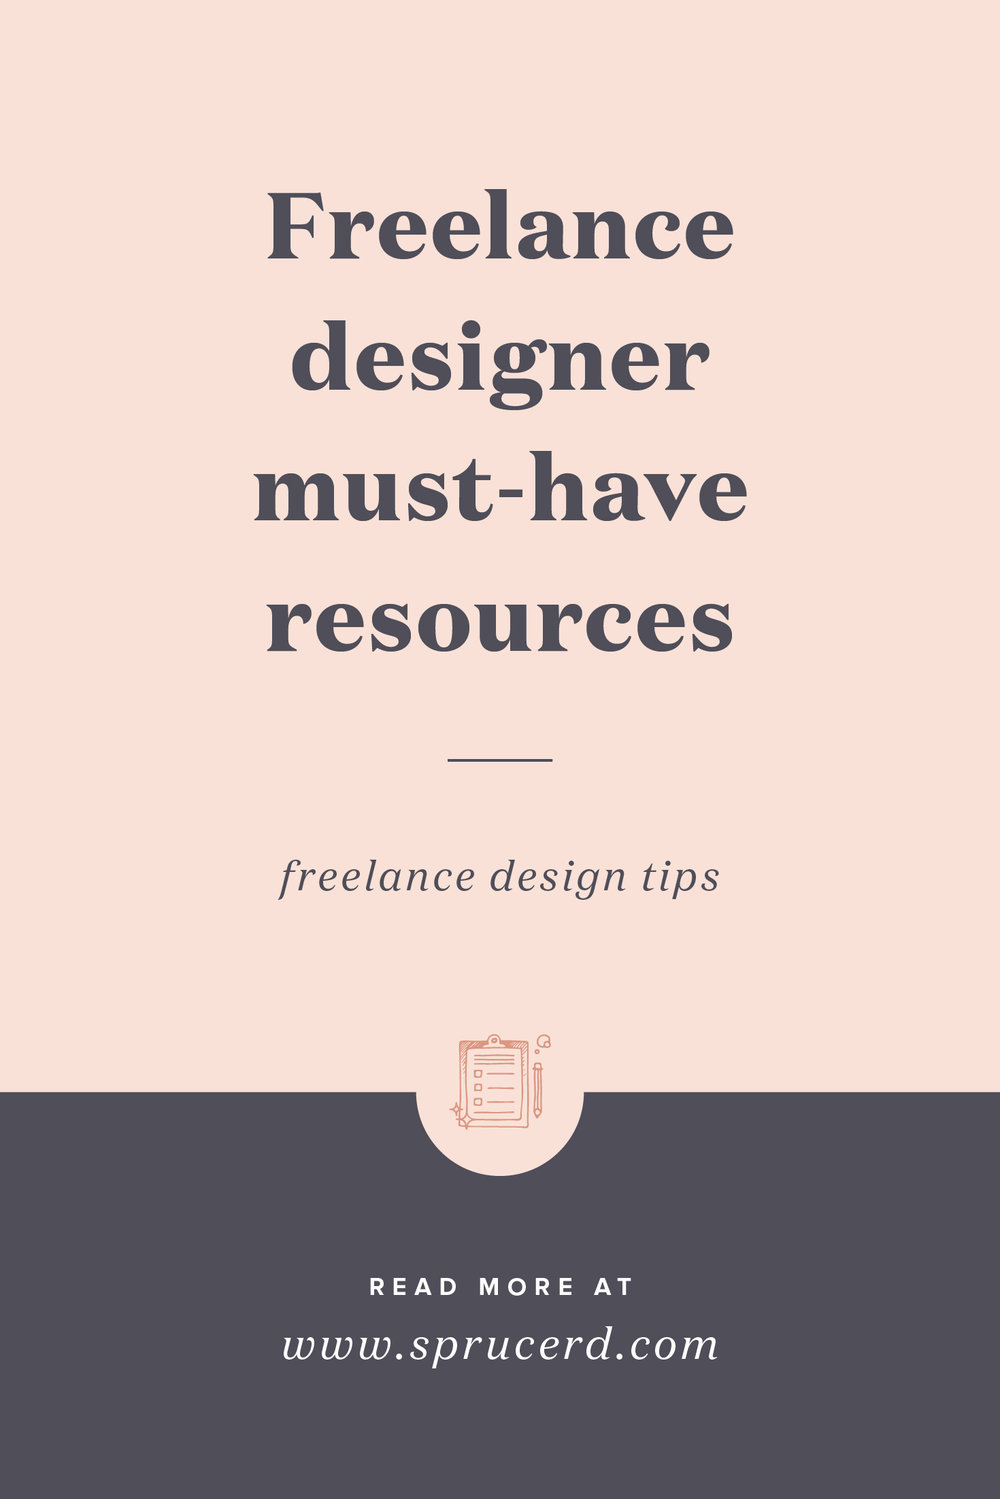 Freelance Designer Resources | Spruce Rd. | A roundup of tools, software and designer must-haves for running a freelance business.